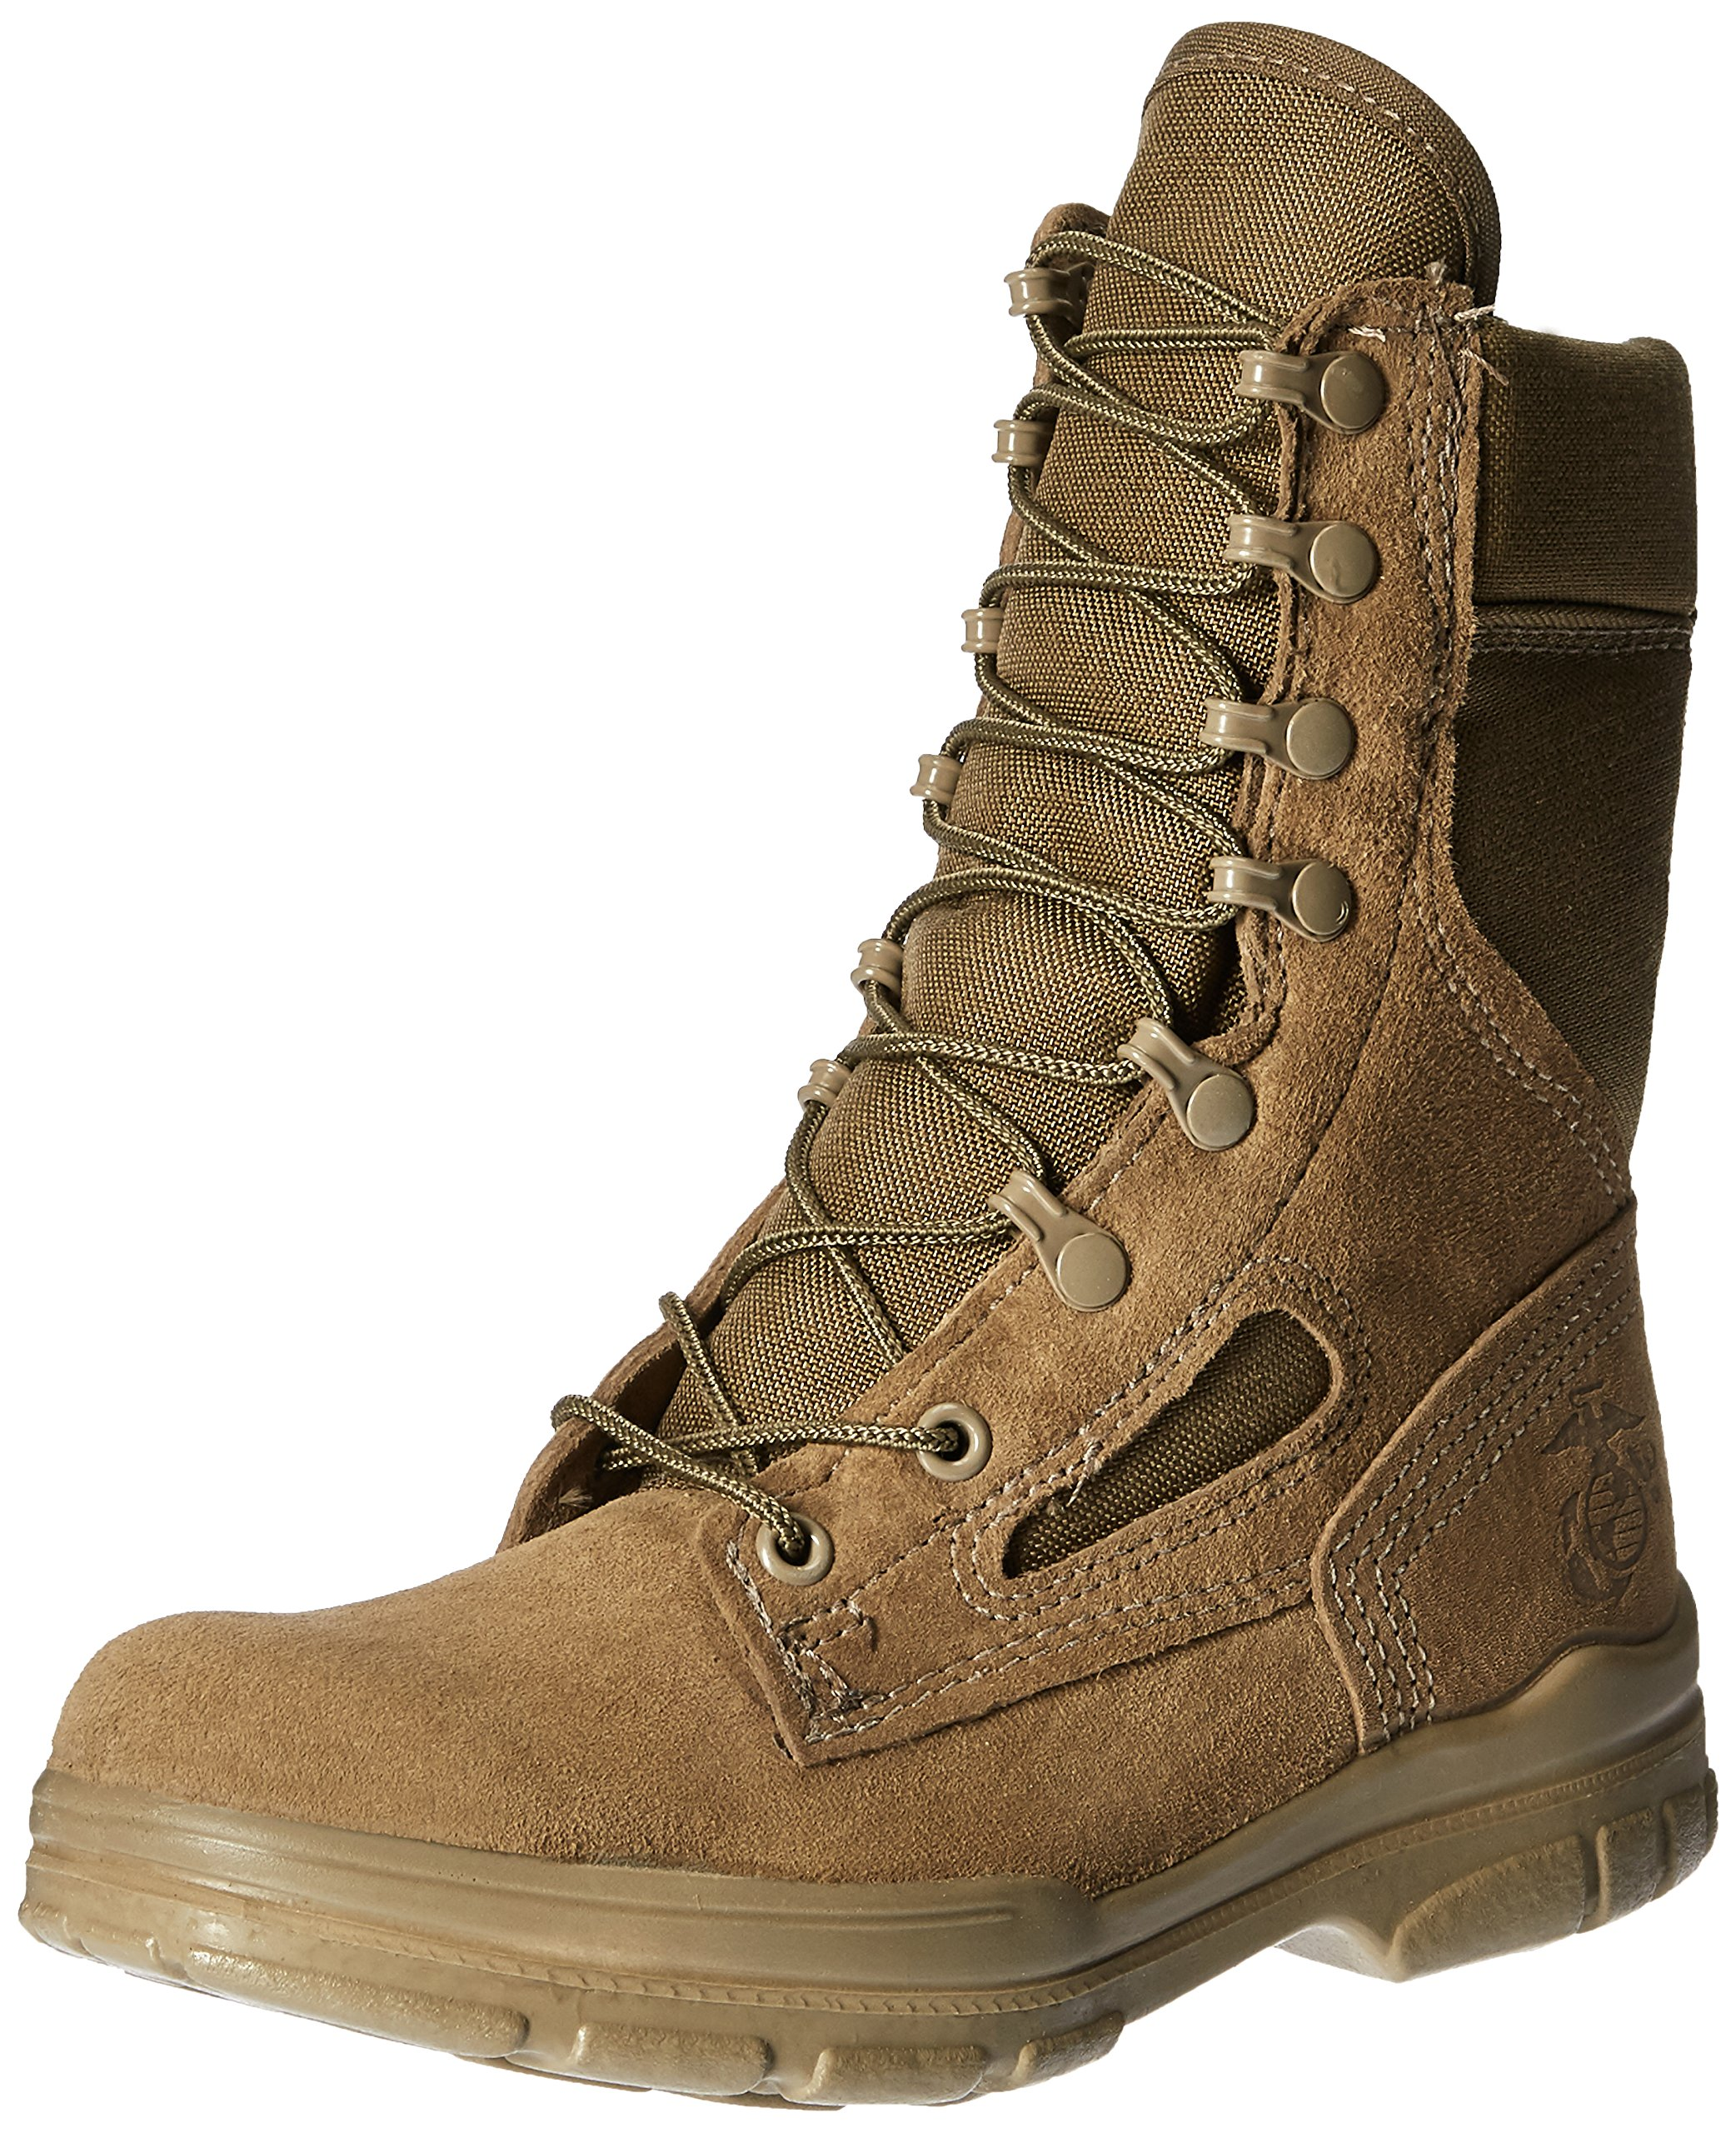 Bates Women's USMC Lightweight DuraShocks Military & Tactical Boot, Olive Mojave, 8.5 M US by Bates